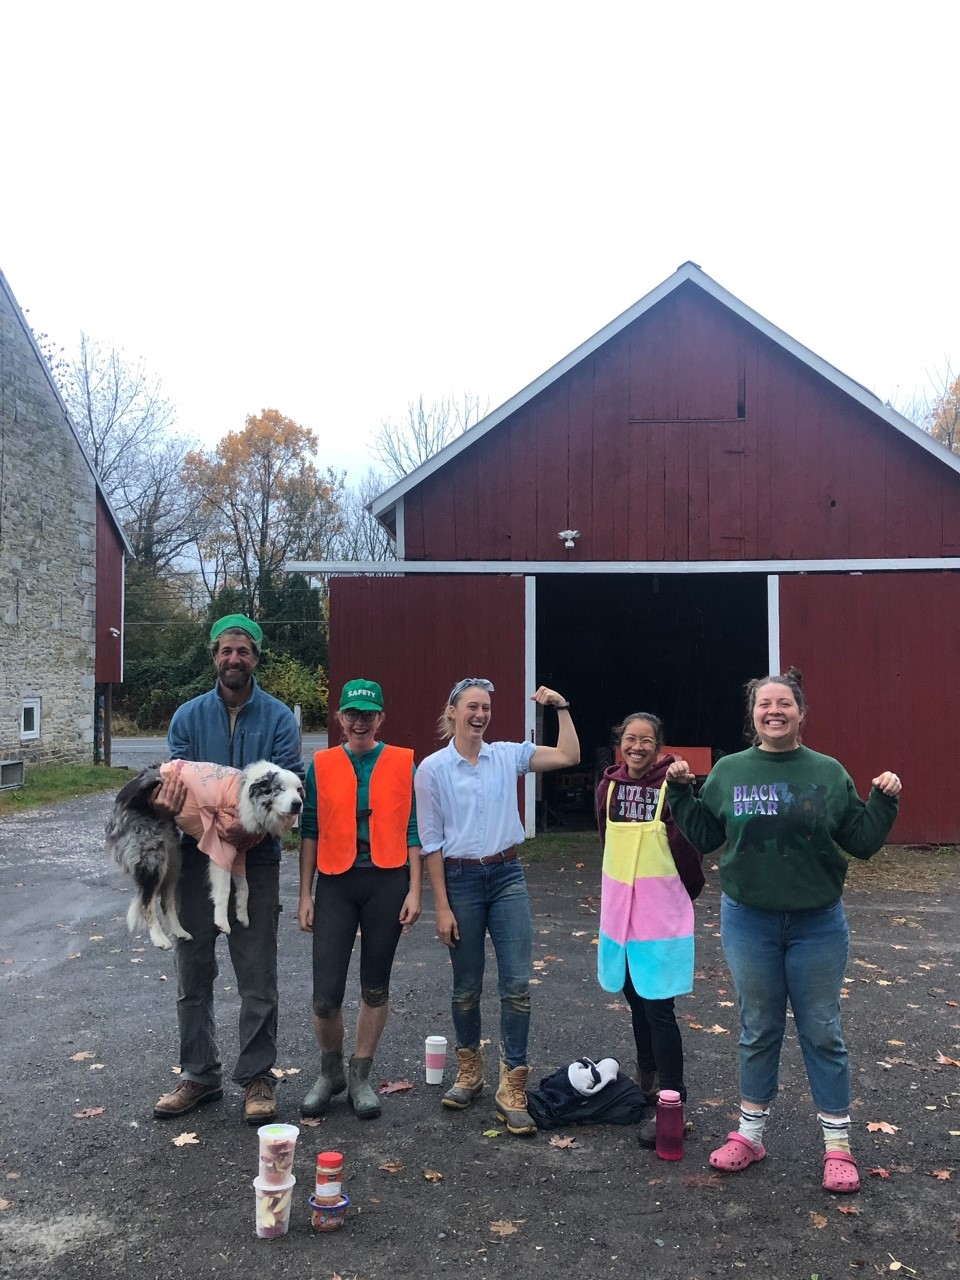 Friday CSA: Dickinson College Farm Field Notes for Week of November 4th